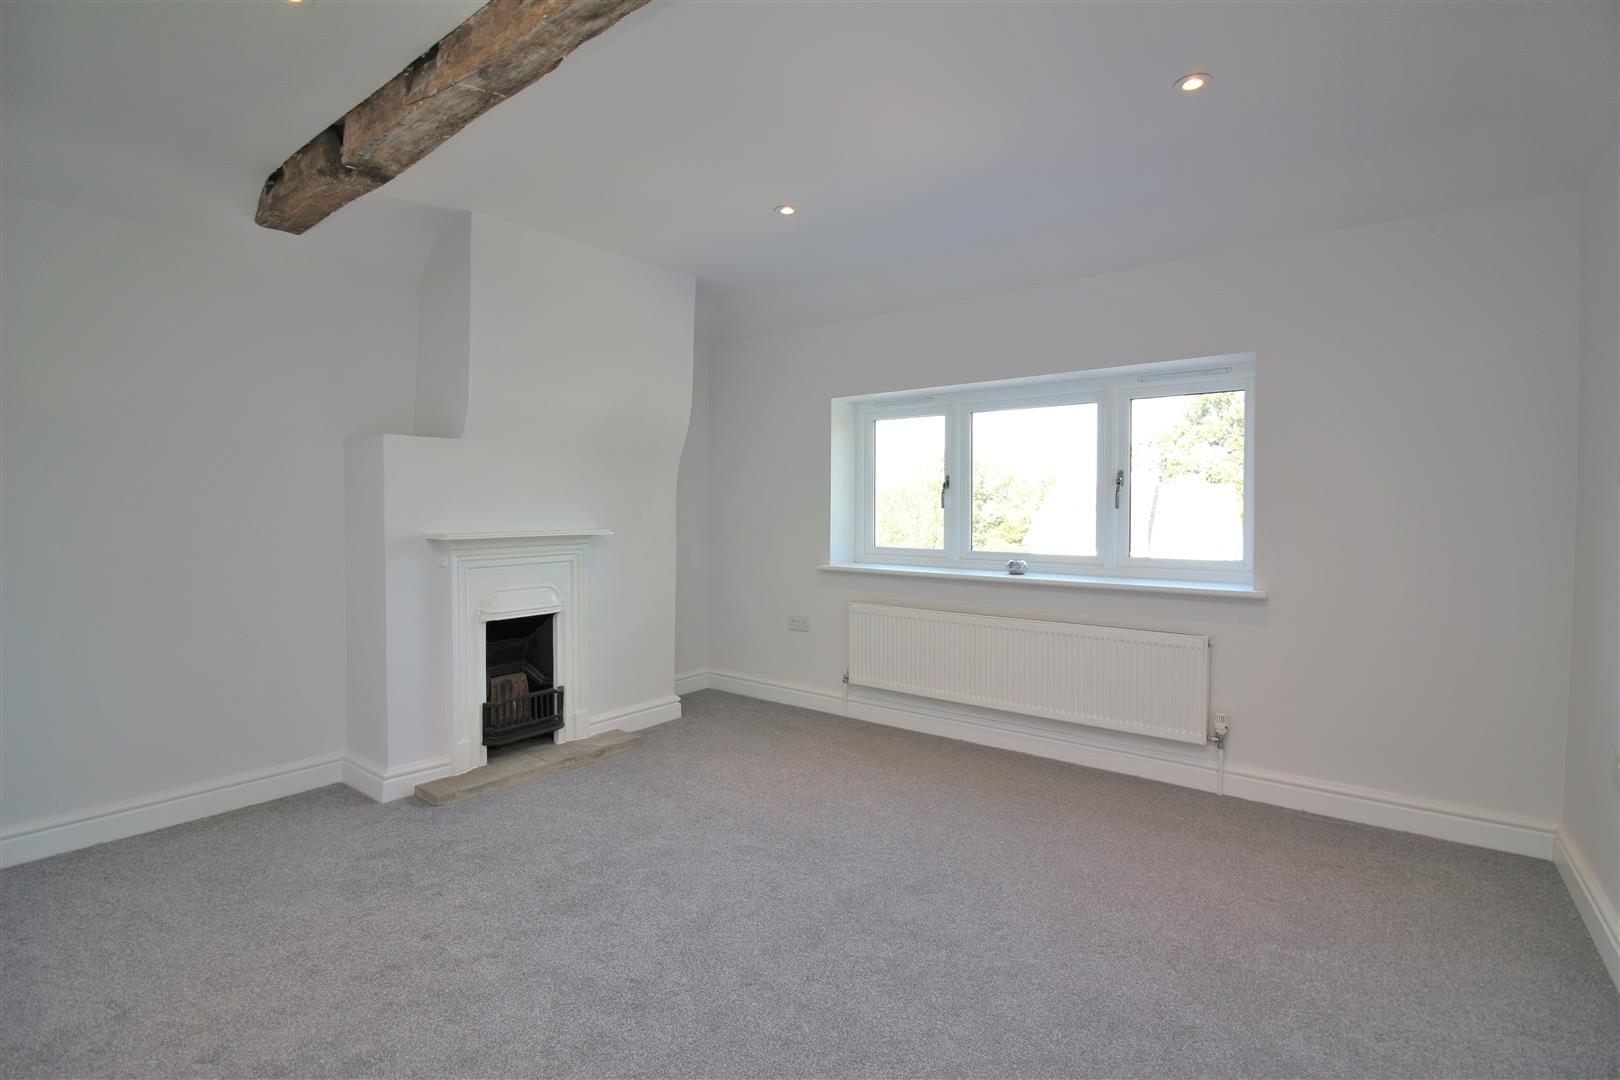 4 bed for sale in London Road, Shenley - (Property Image 7)